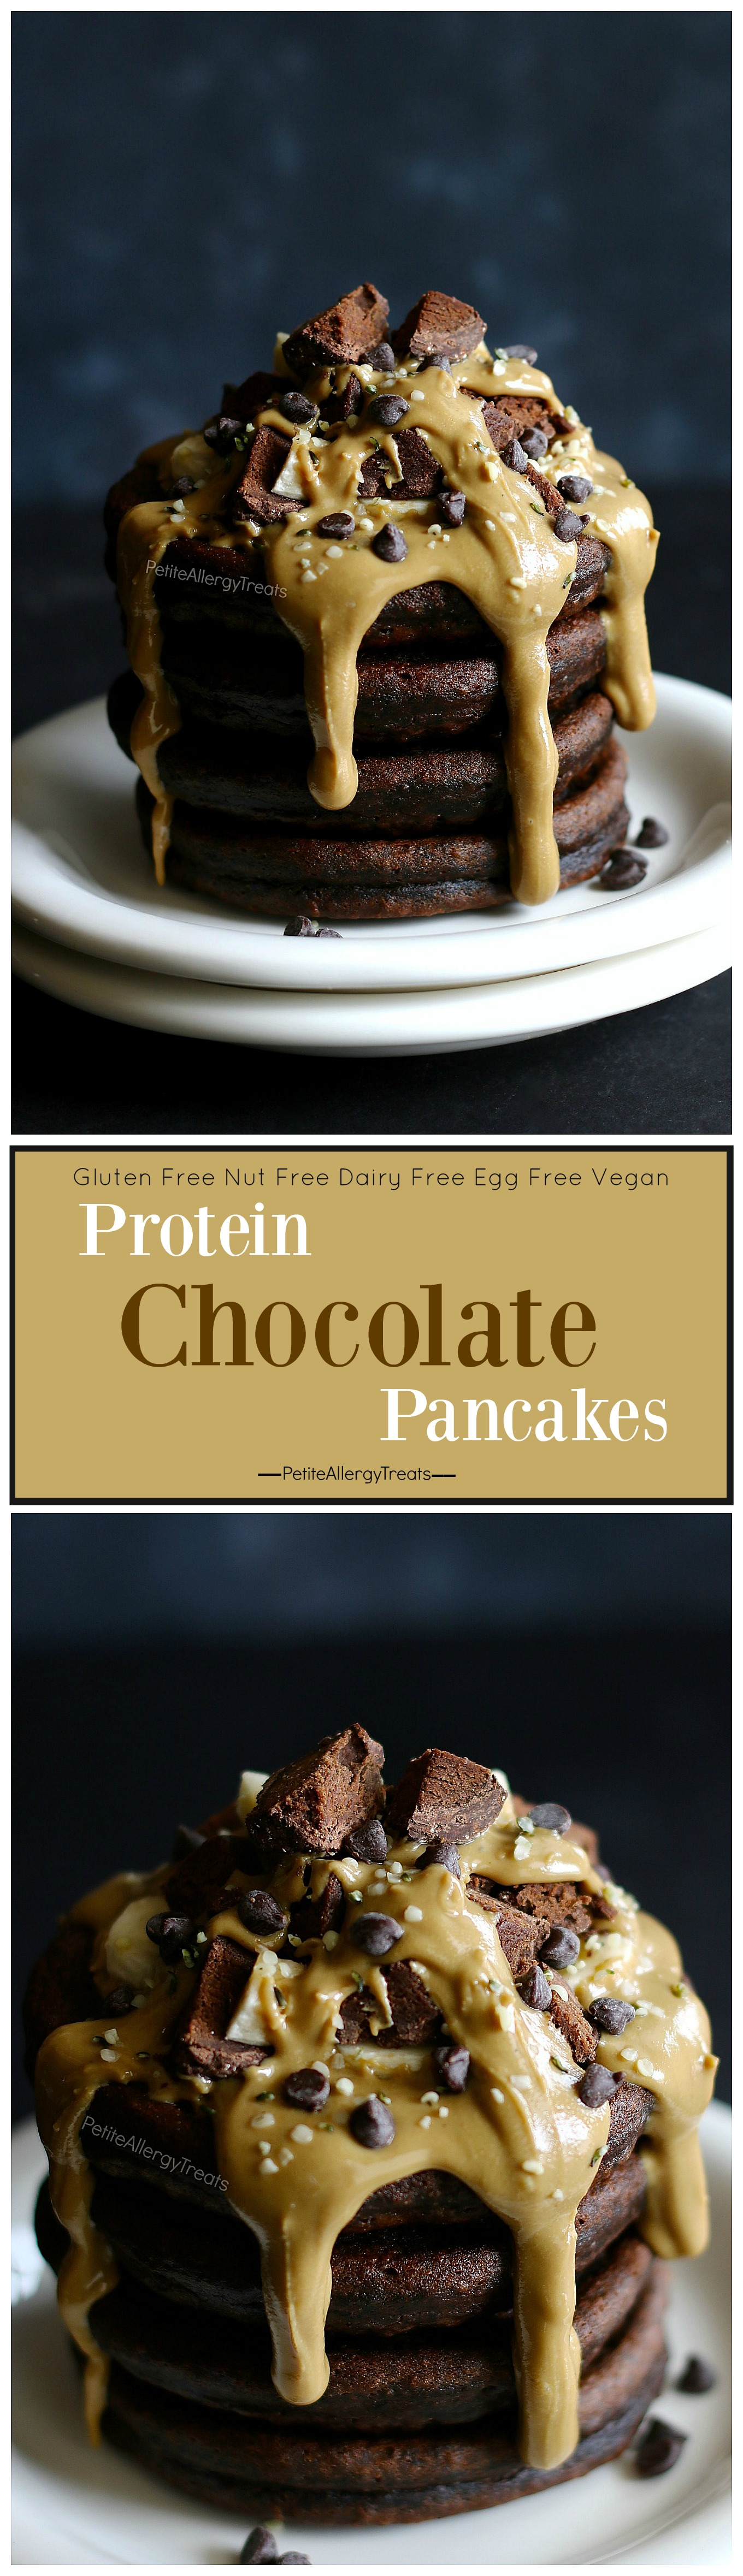 Gluten Free Chocolate Pancakes Recipe (dairy free gluten free)- Protein packed chocolate nut free egg free pancakes! Food Allergy Friendly.